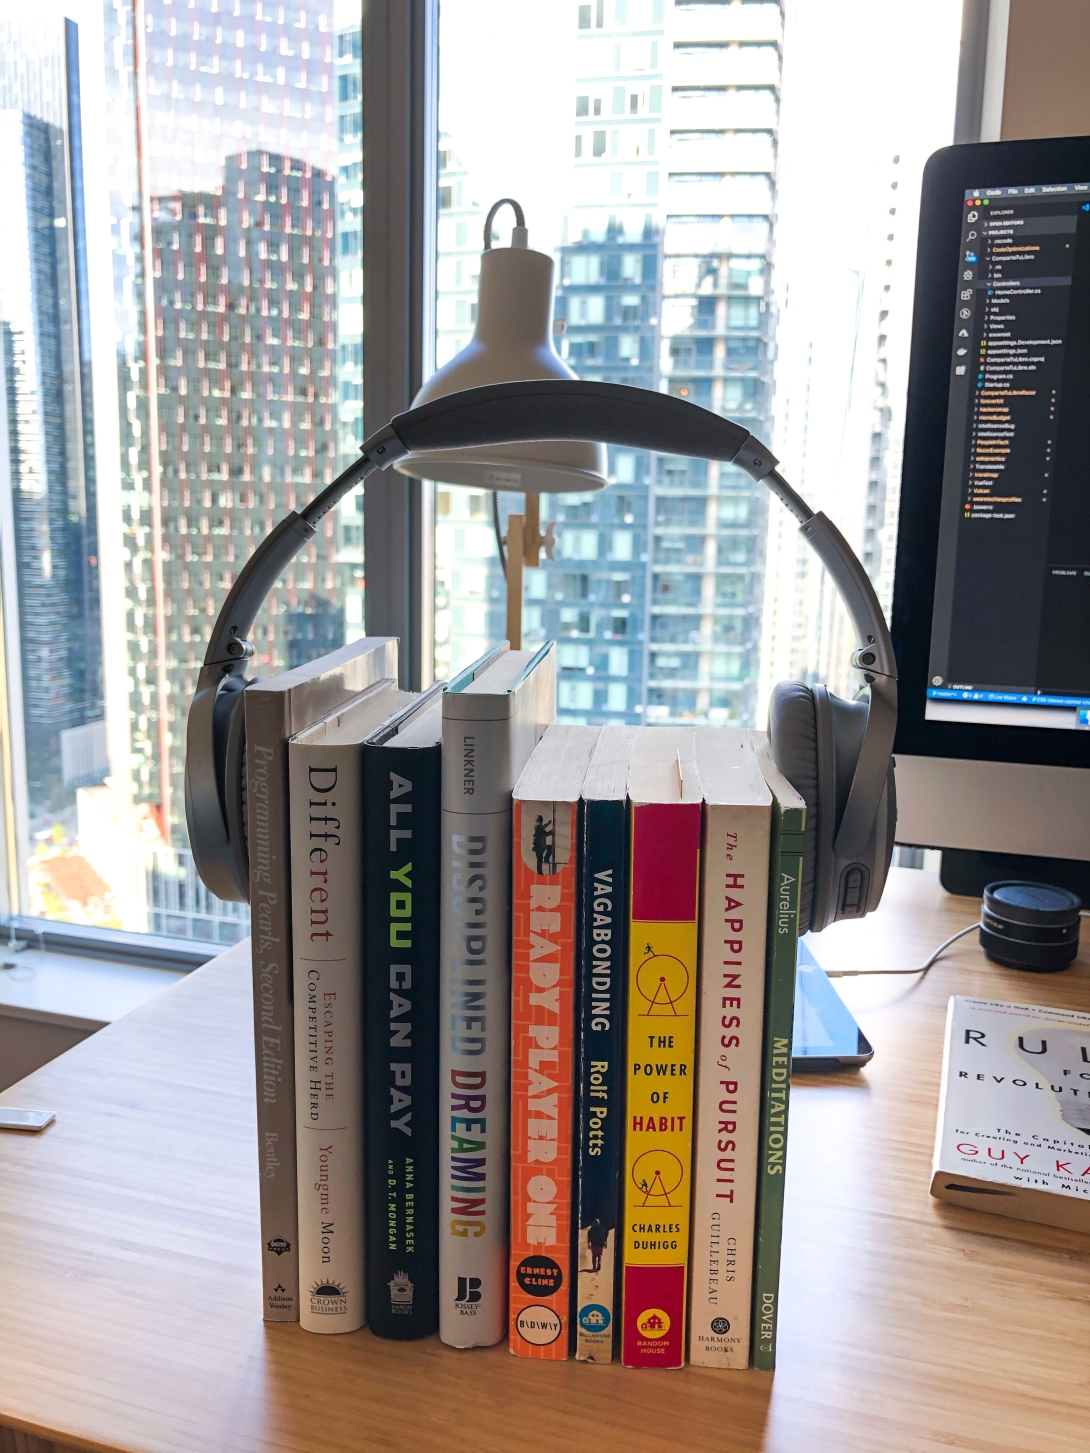 Books wrapped by headphones